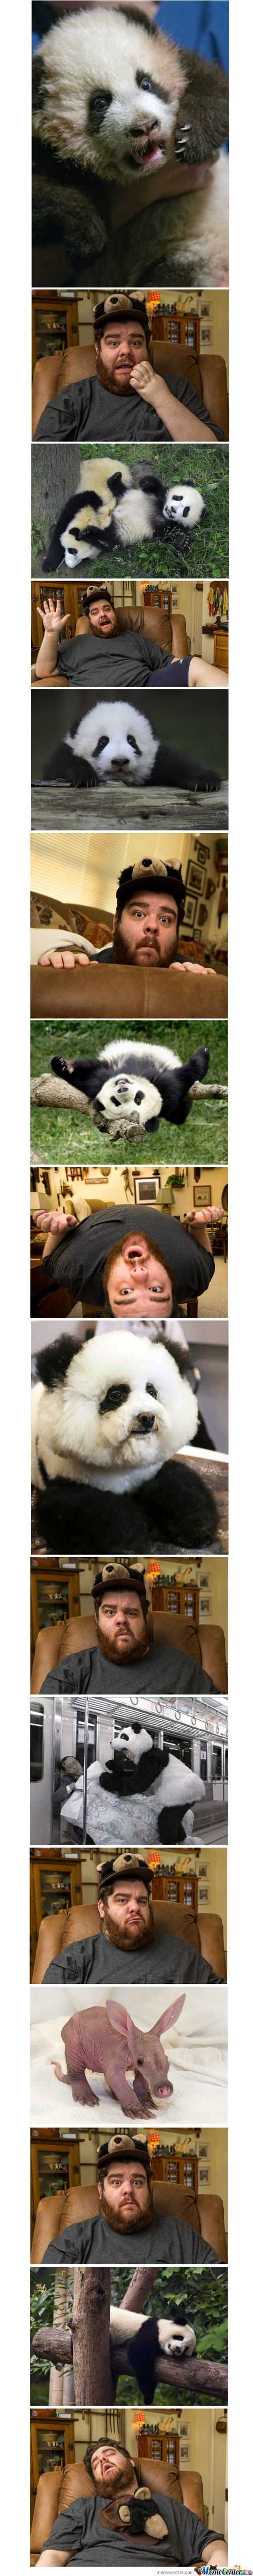 Frogman's Reactions To Pandas